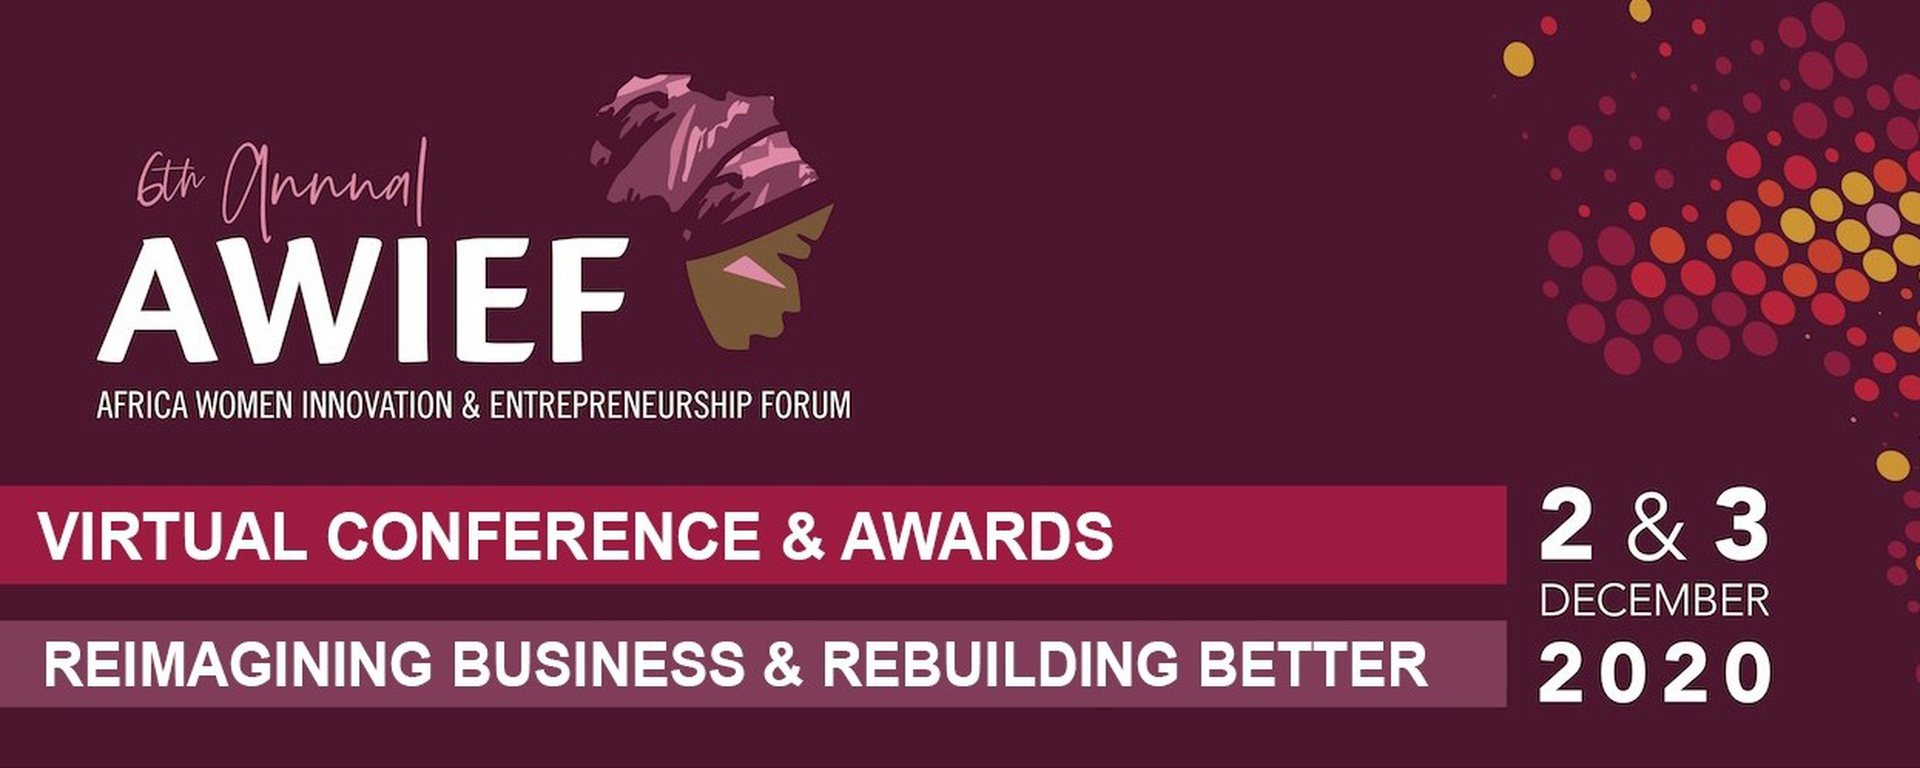 AWIEF - 6th Africa Women Innovation And Entrepreneurship Forum: Reimagining Business & Rebuilding Better Movemeback African event cover image